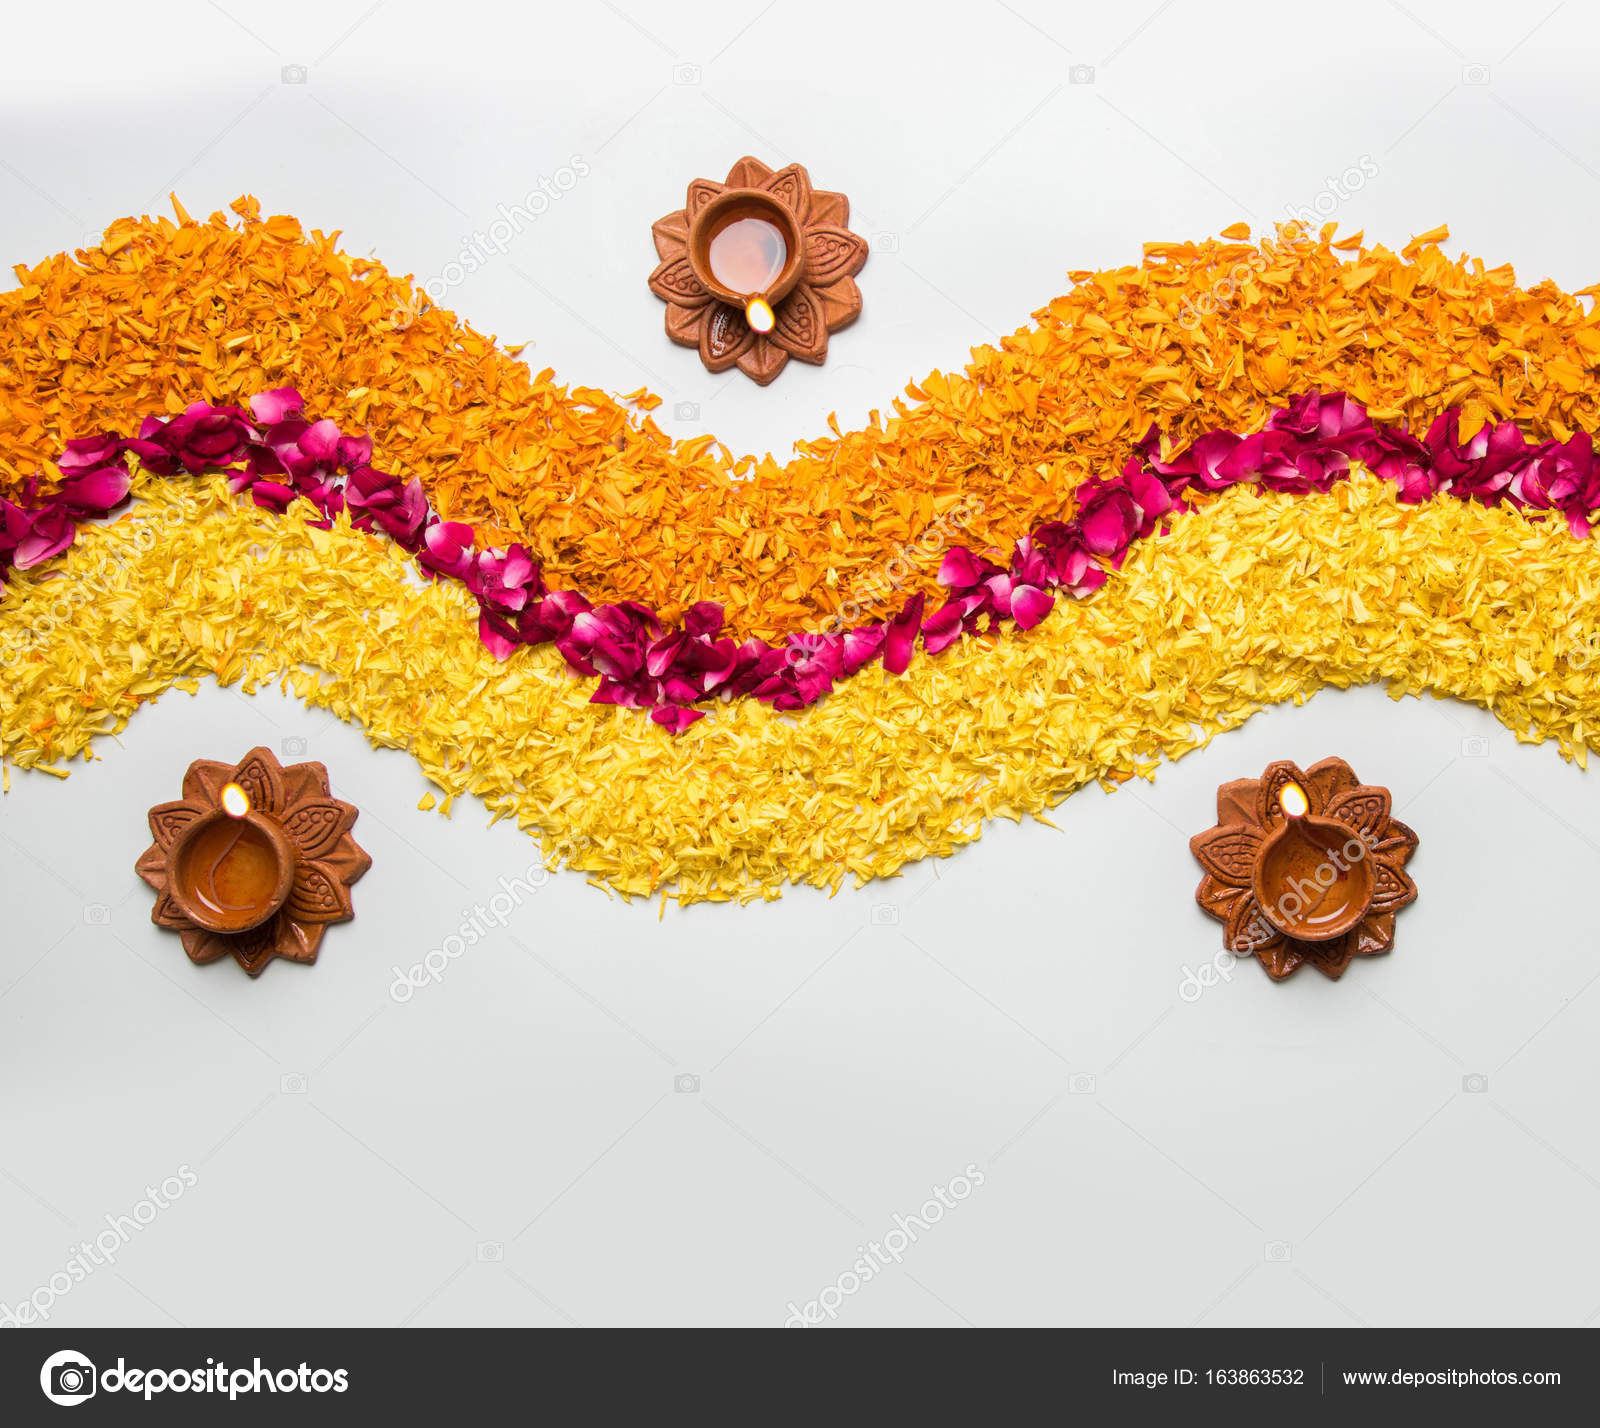 Flower Rangoli For Diwali Or Pongal Made Using Marigold Or Zendu Flowers And Red Rose Petals Over White Background With Diwali Diya In The Middle Selective Focus Stock Photo C Stockimagefactory Com